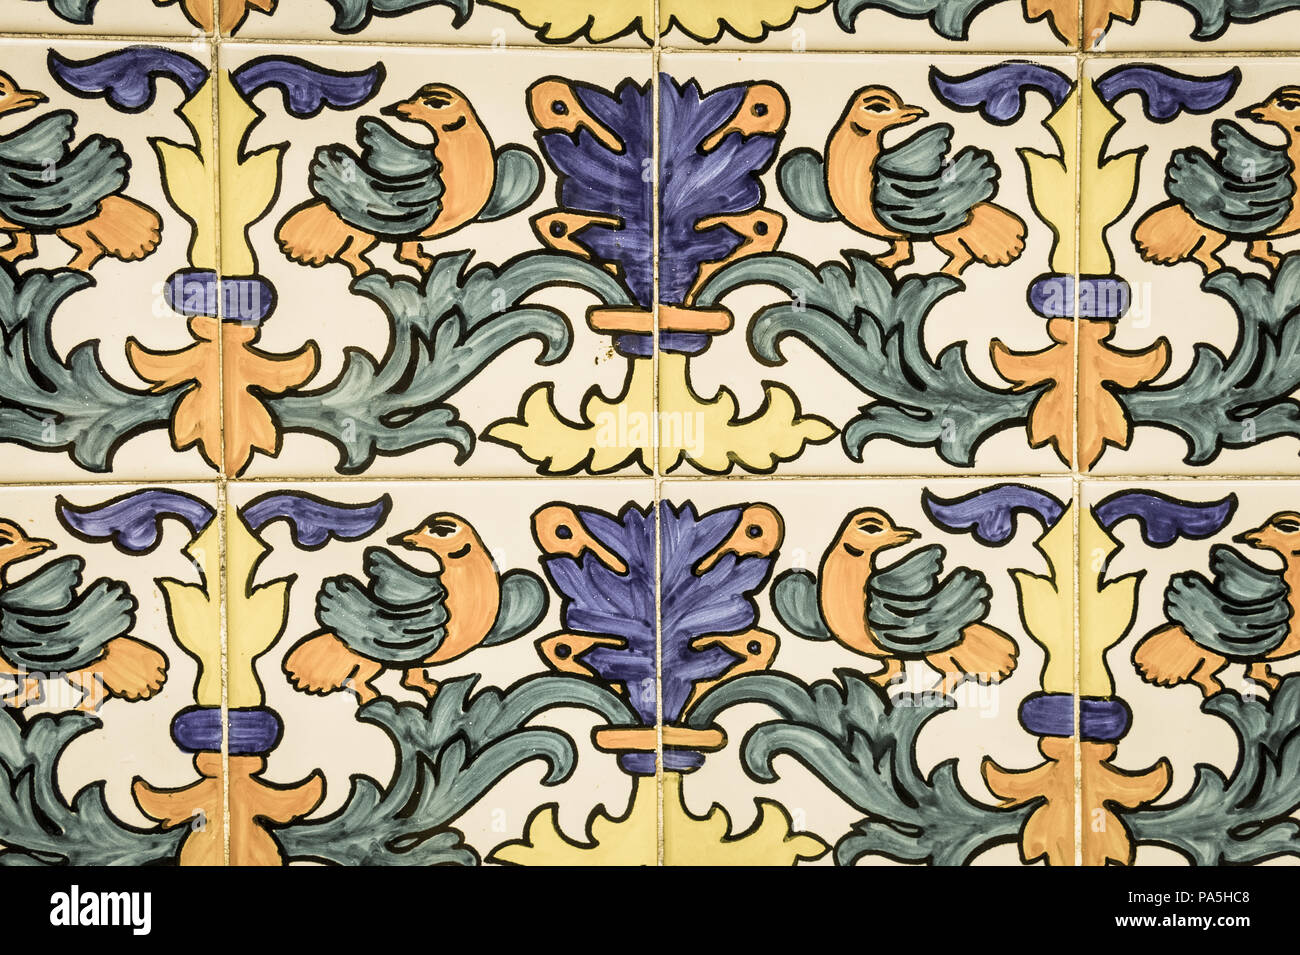 Set of typical Catalan mosaics, with animal and nature motifs. Barcelona, Spain. Image with vintage and yesteryear effect - Stock Image